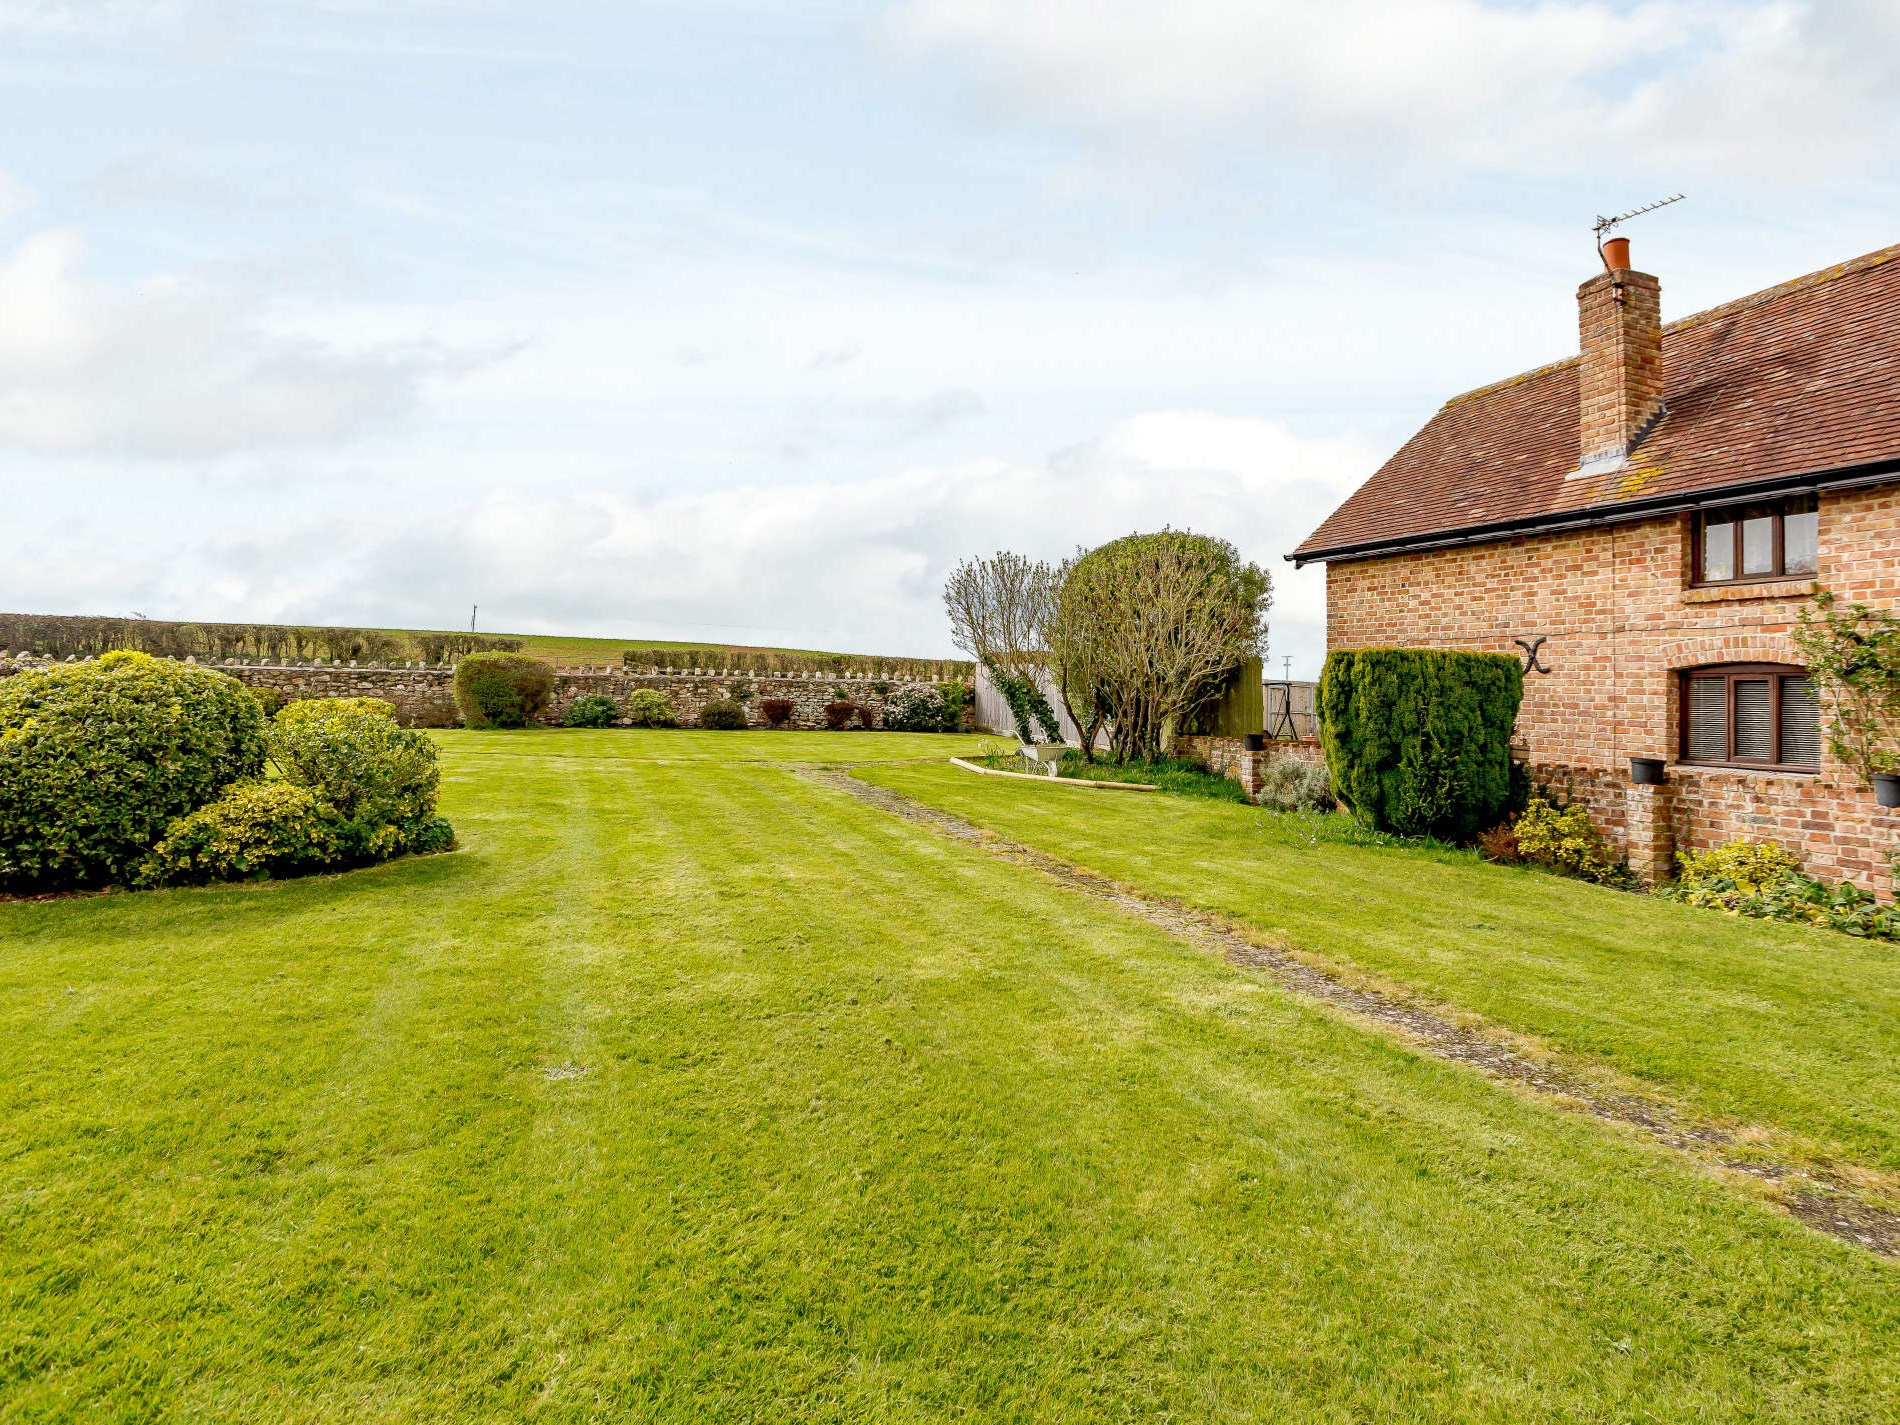 7 Bedroom Cottage in Taunton, Dorset and Somerset